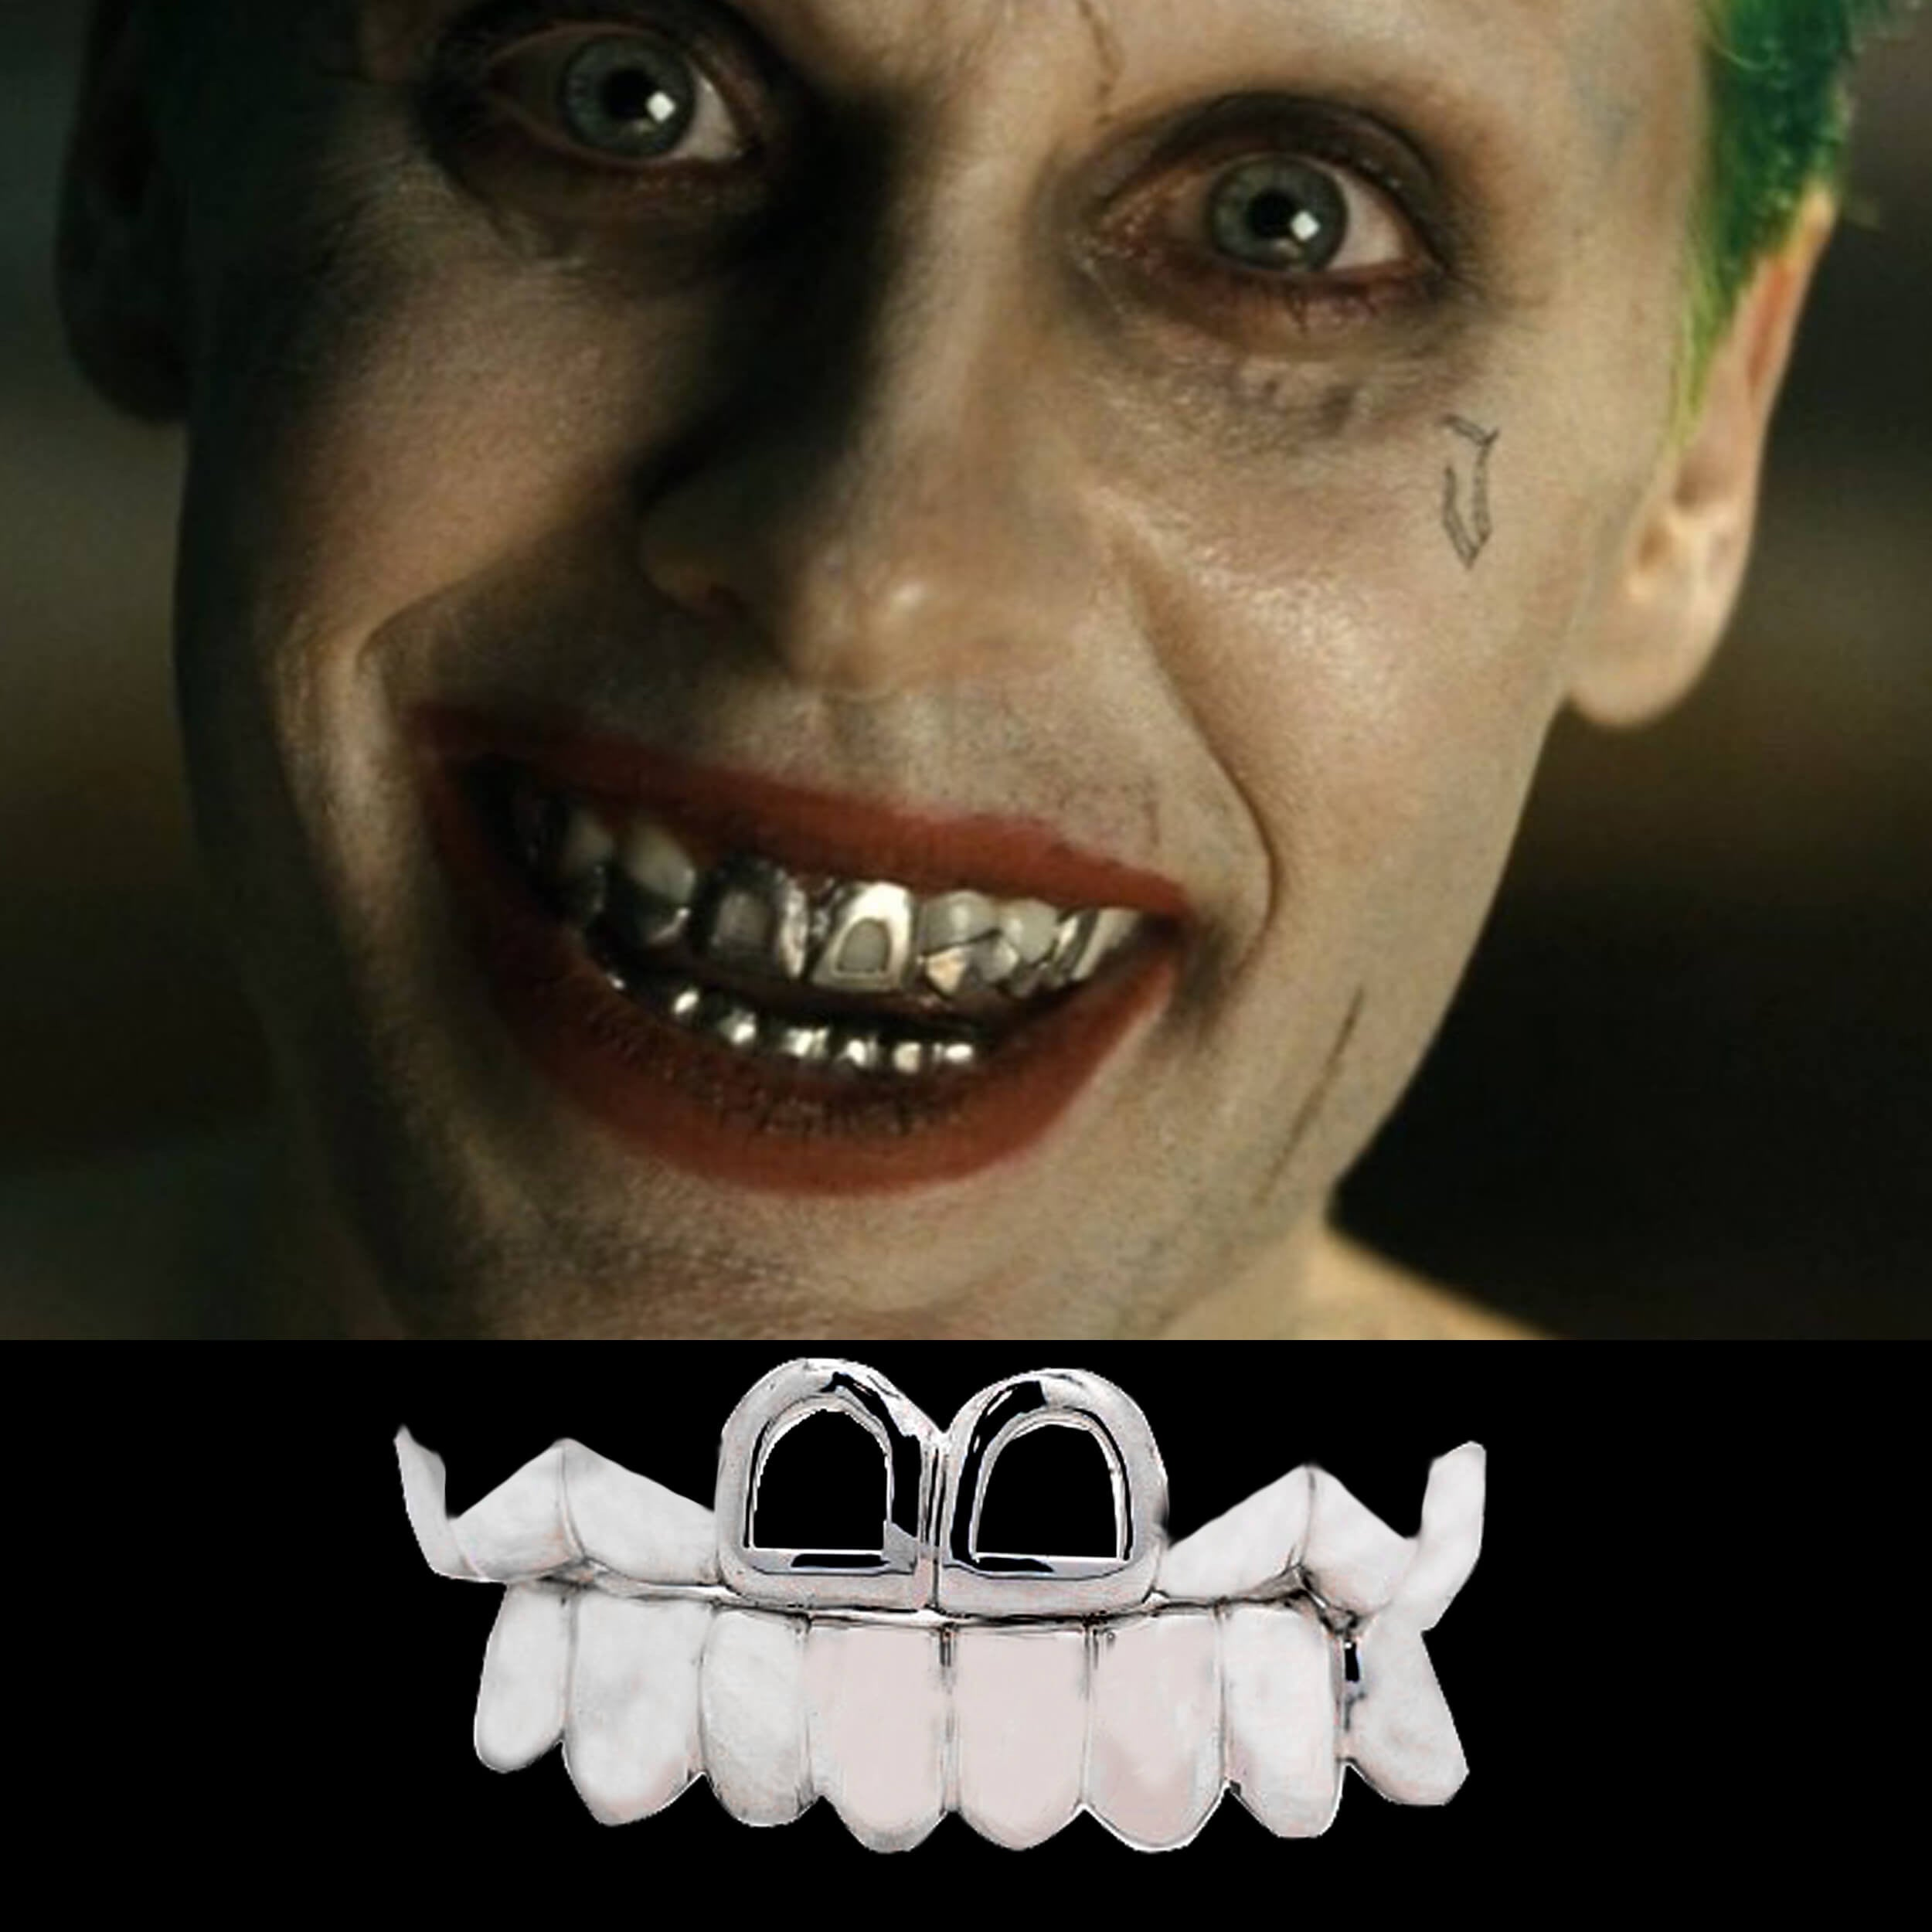 Custom Silver Teeth Joker Grillz from Suicide Squad